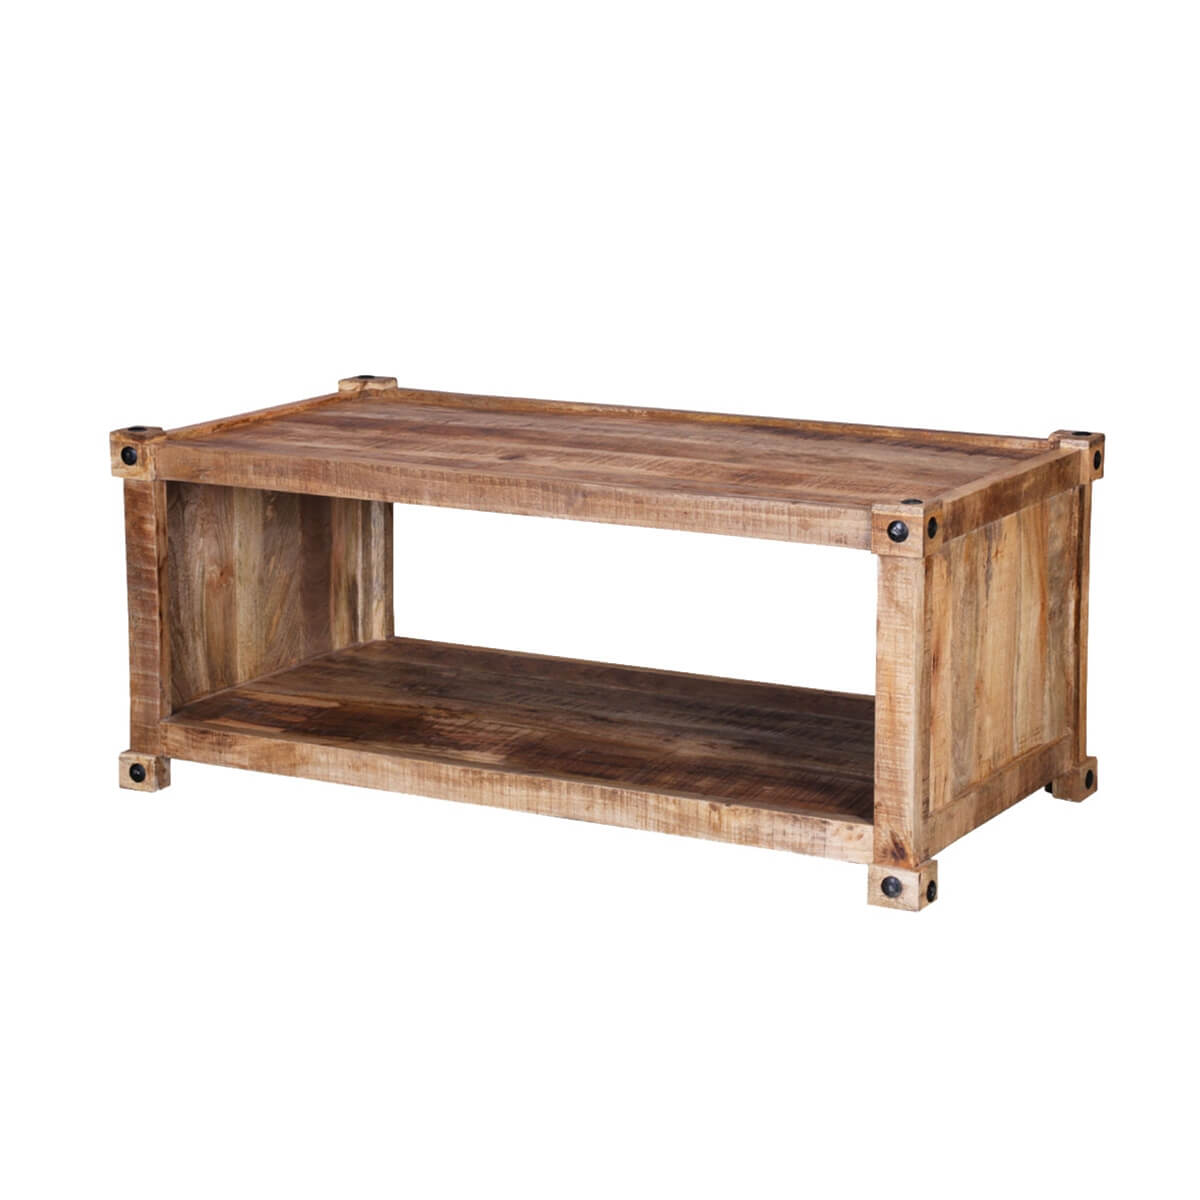 Vail 48 handcrafted solid wood rustic coffee table Handcrafted coffee table